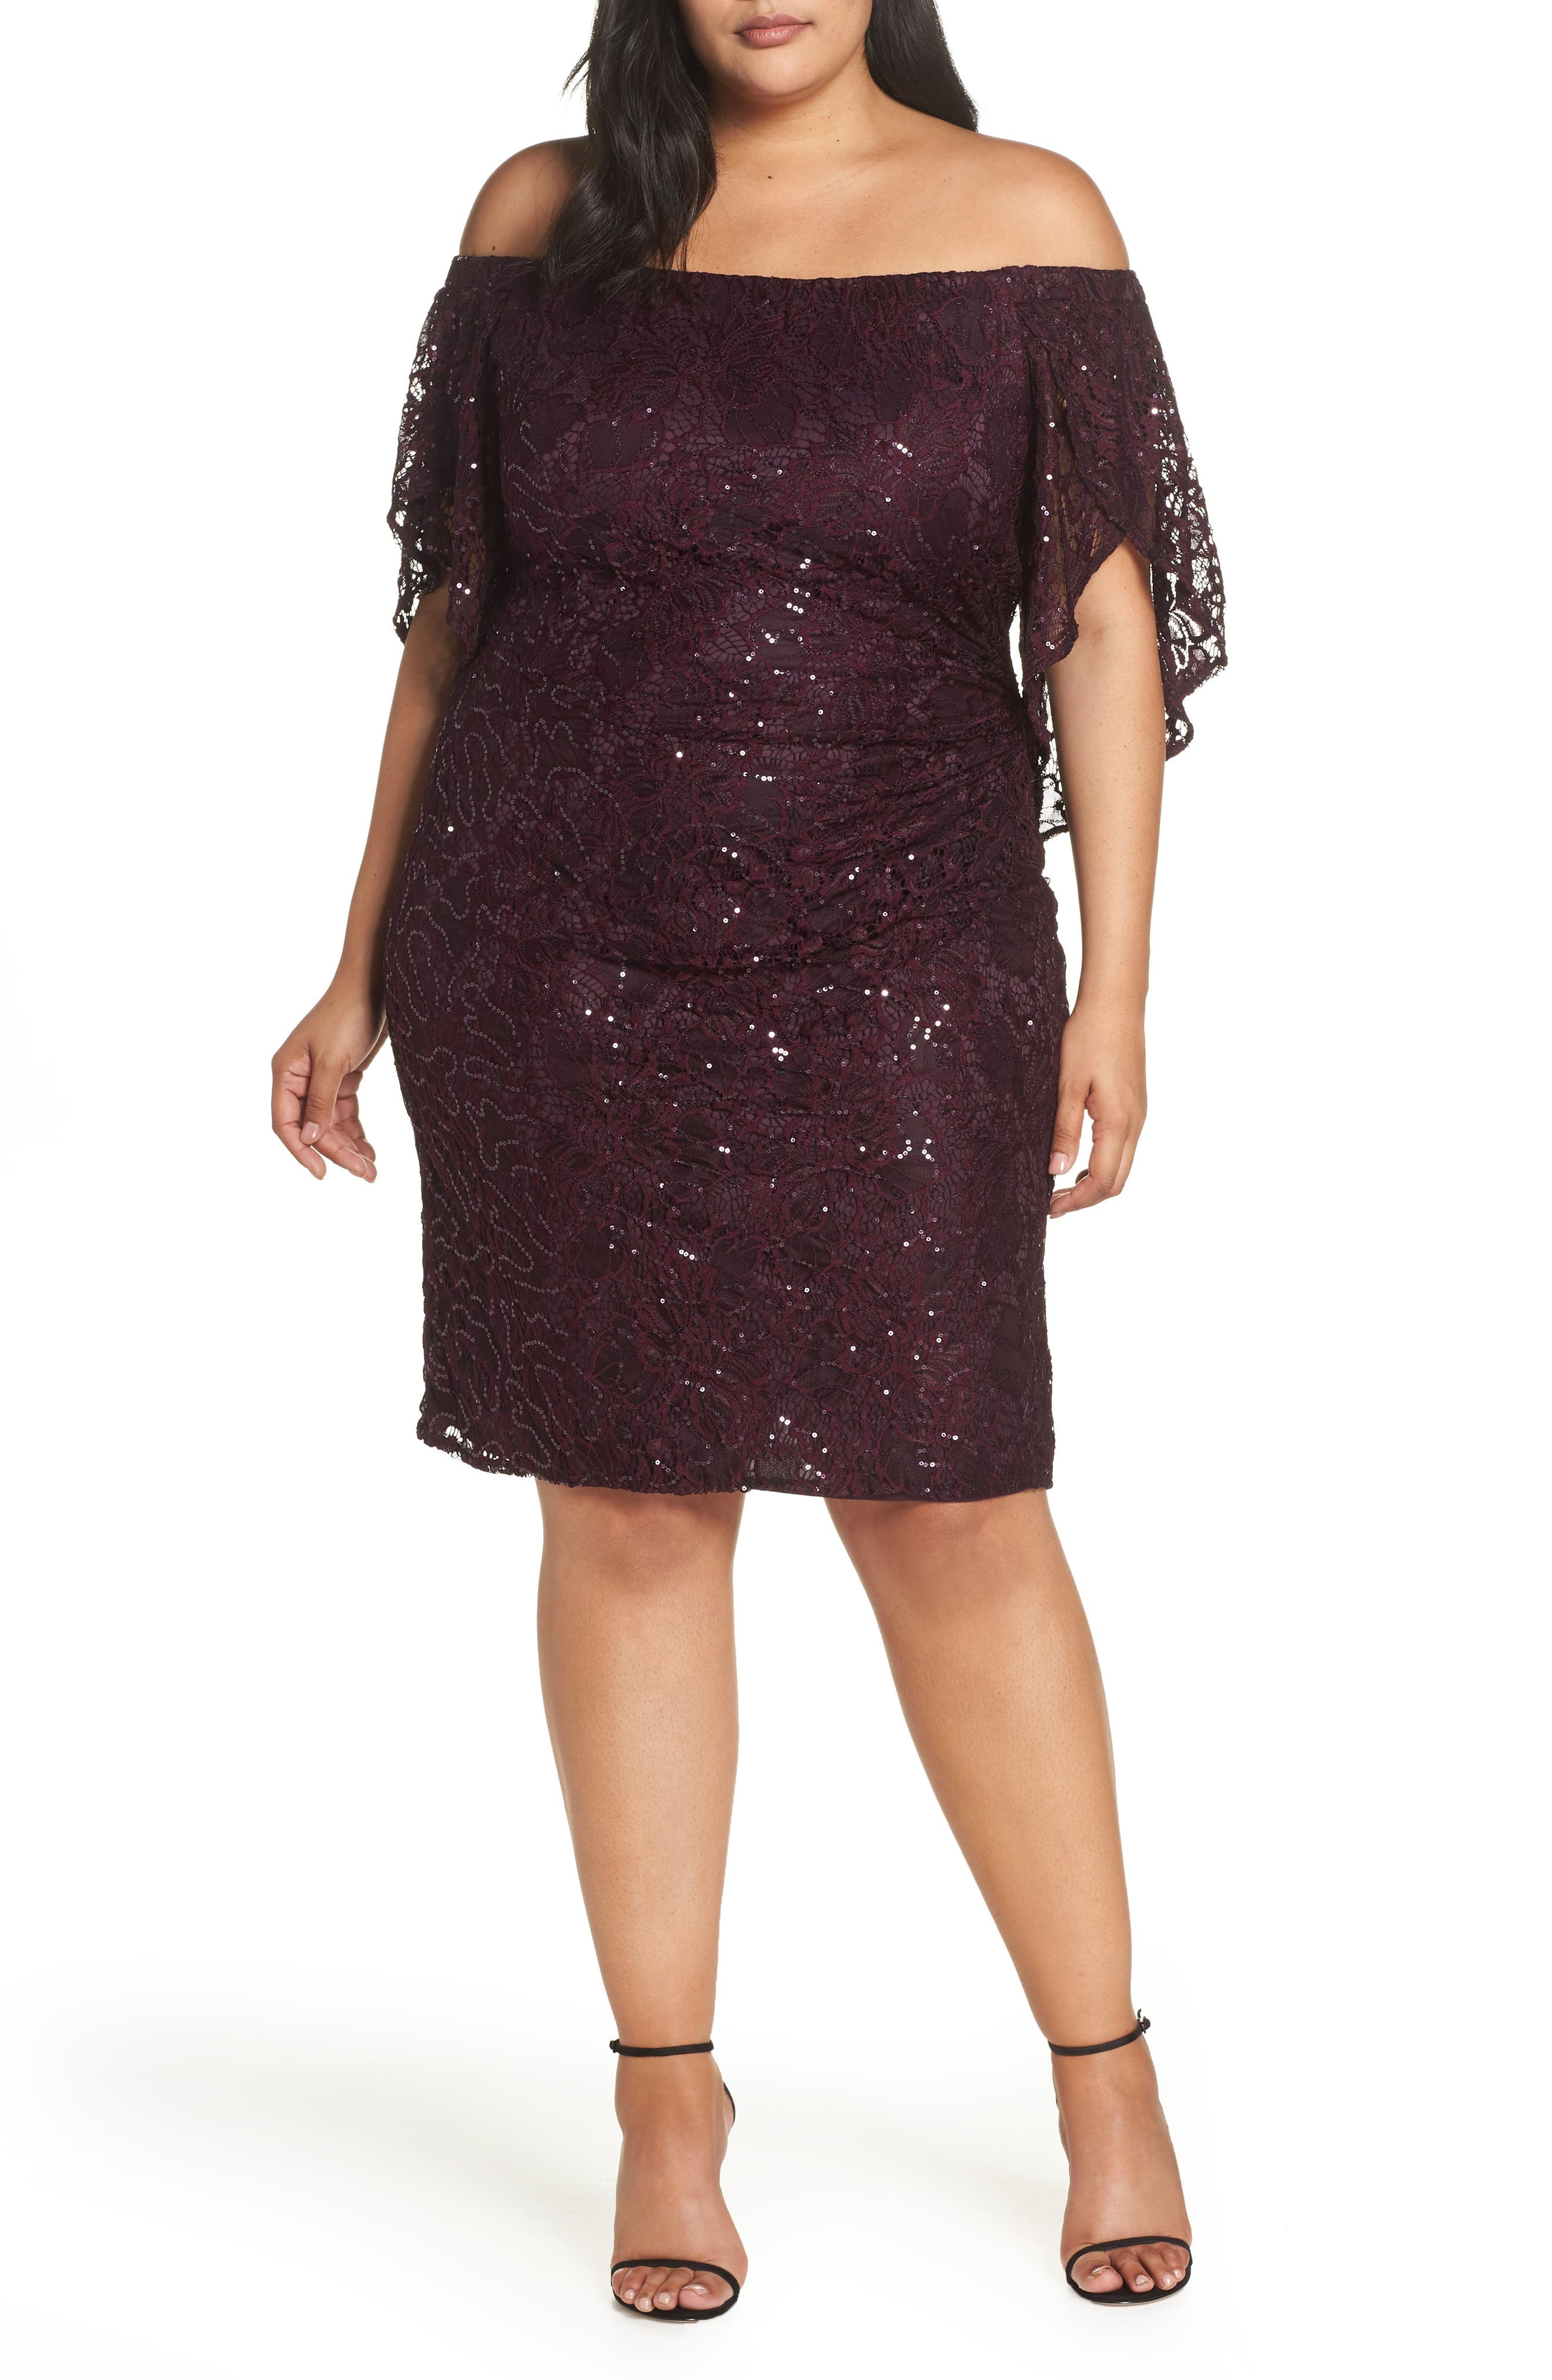 Plus Size Morgan & Co. Sequin Off The Shoulder Cocktail Dress, Red